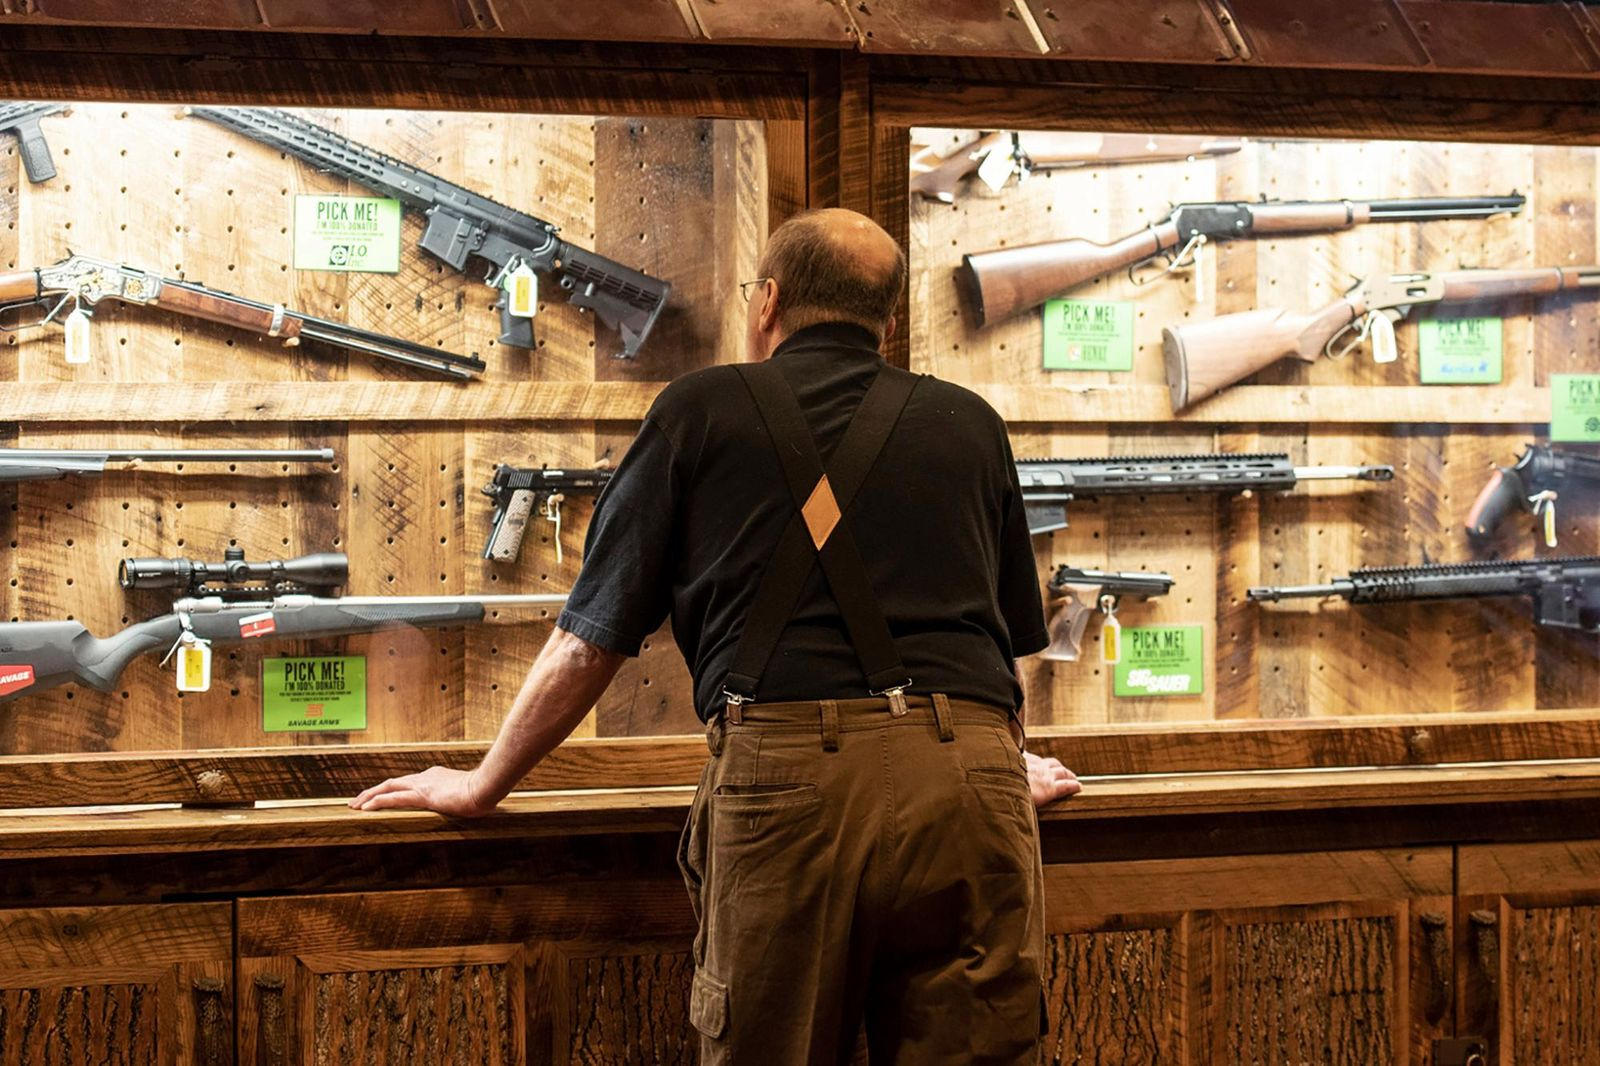 FILE - In this April 25, 2019, file photo, a man looks at cases of firearms in the halls of the Indianapolis Convention Center where the National Rifle Association will be holding its 148th annual meeting in Indianapolis. (AP Photo/Lisa Marie Pane, File)